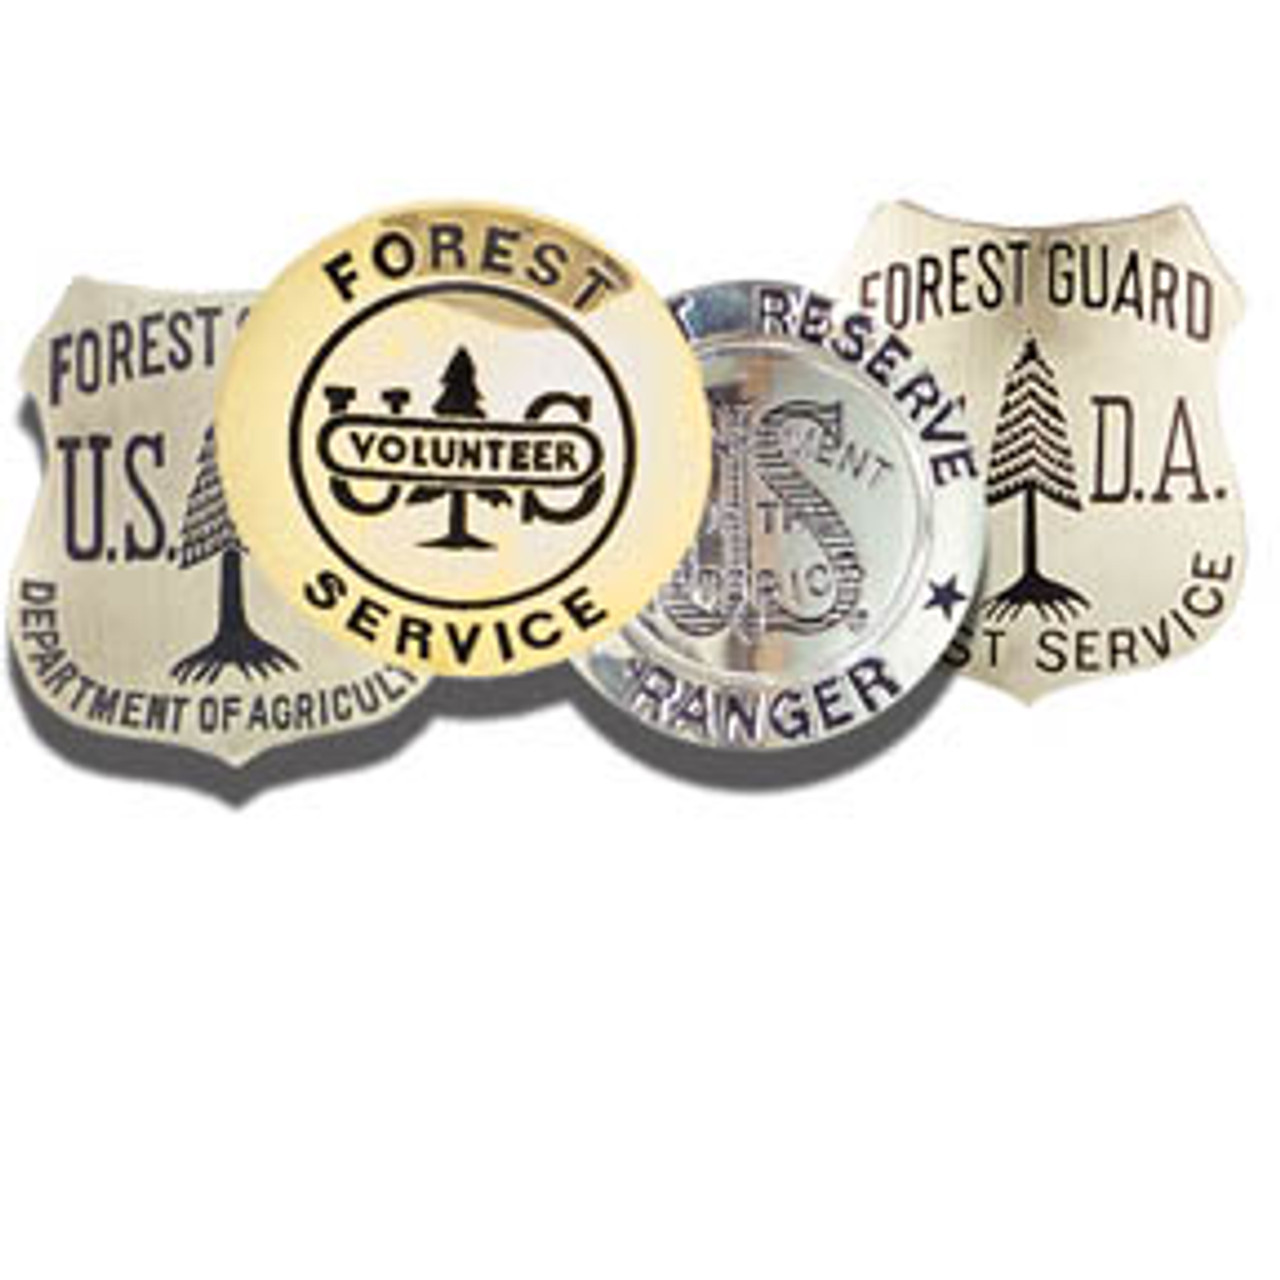 Custom Badges or Coins CAST IN-HOUSE - Please contact Nicole: art@westernheritage.com